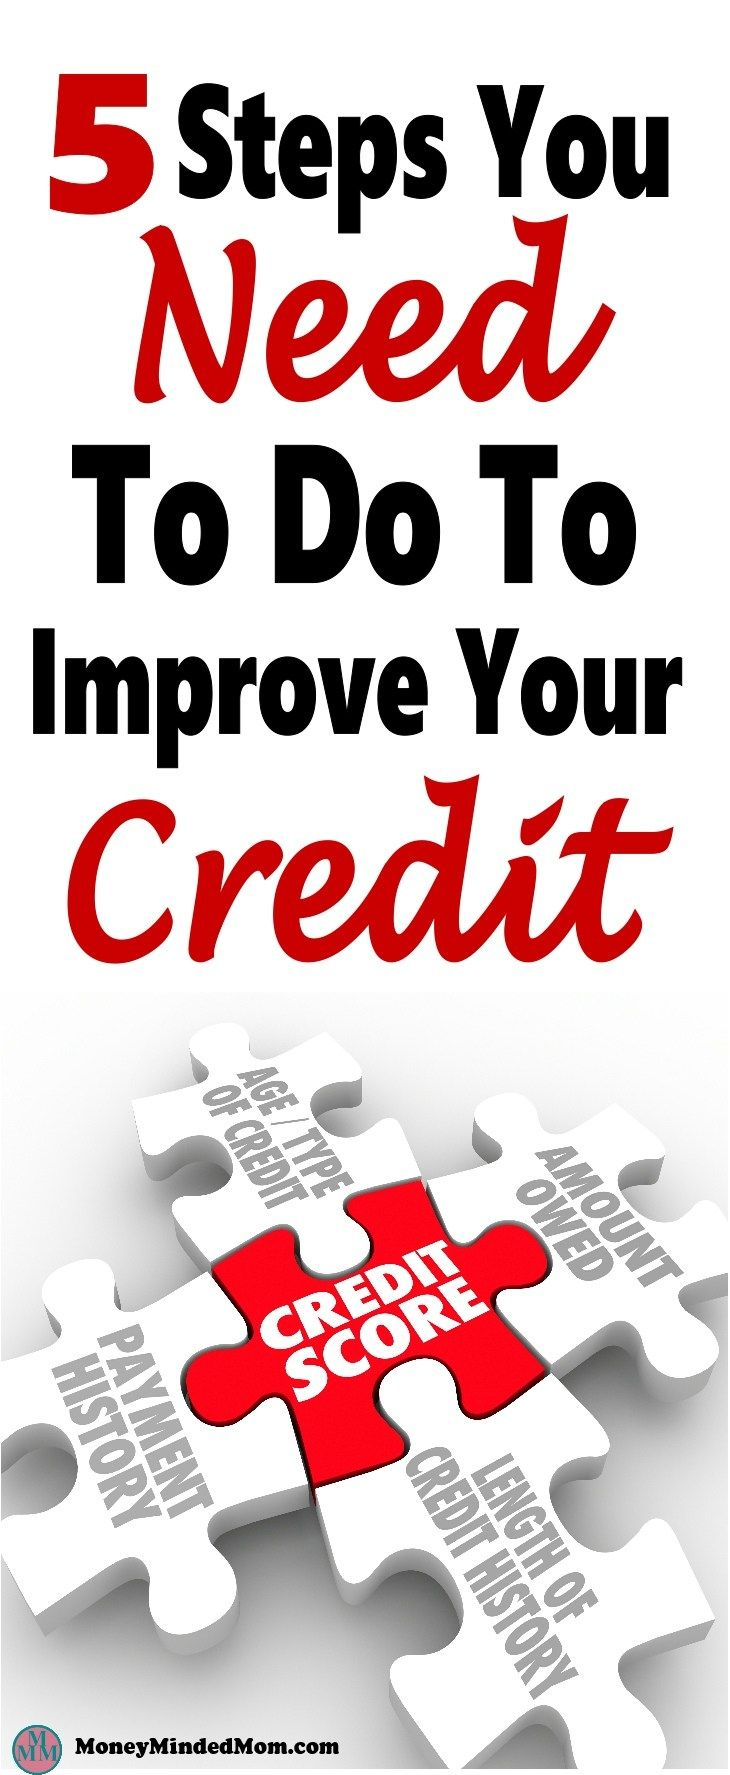 5 Steps You Need To Do To Improve Your Credit. Improving your credit is not as difficult as many people believe. The thing is you need to know what to work on that will make the biggest impact to improve your credit fast. Check out these 5 steps I put together to start building your credit fast! credit | credit repair | improve credit | how to increase credit score | money | finance | credit score #credit #creditscore #money # finance